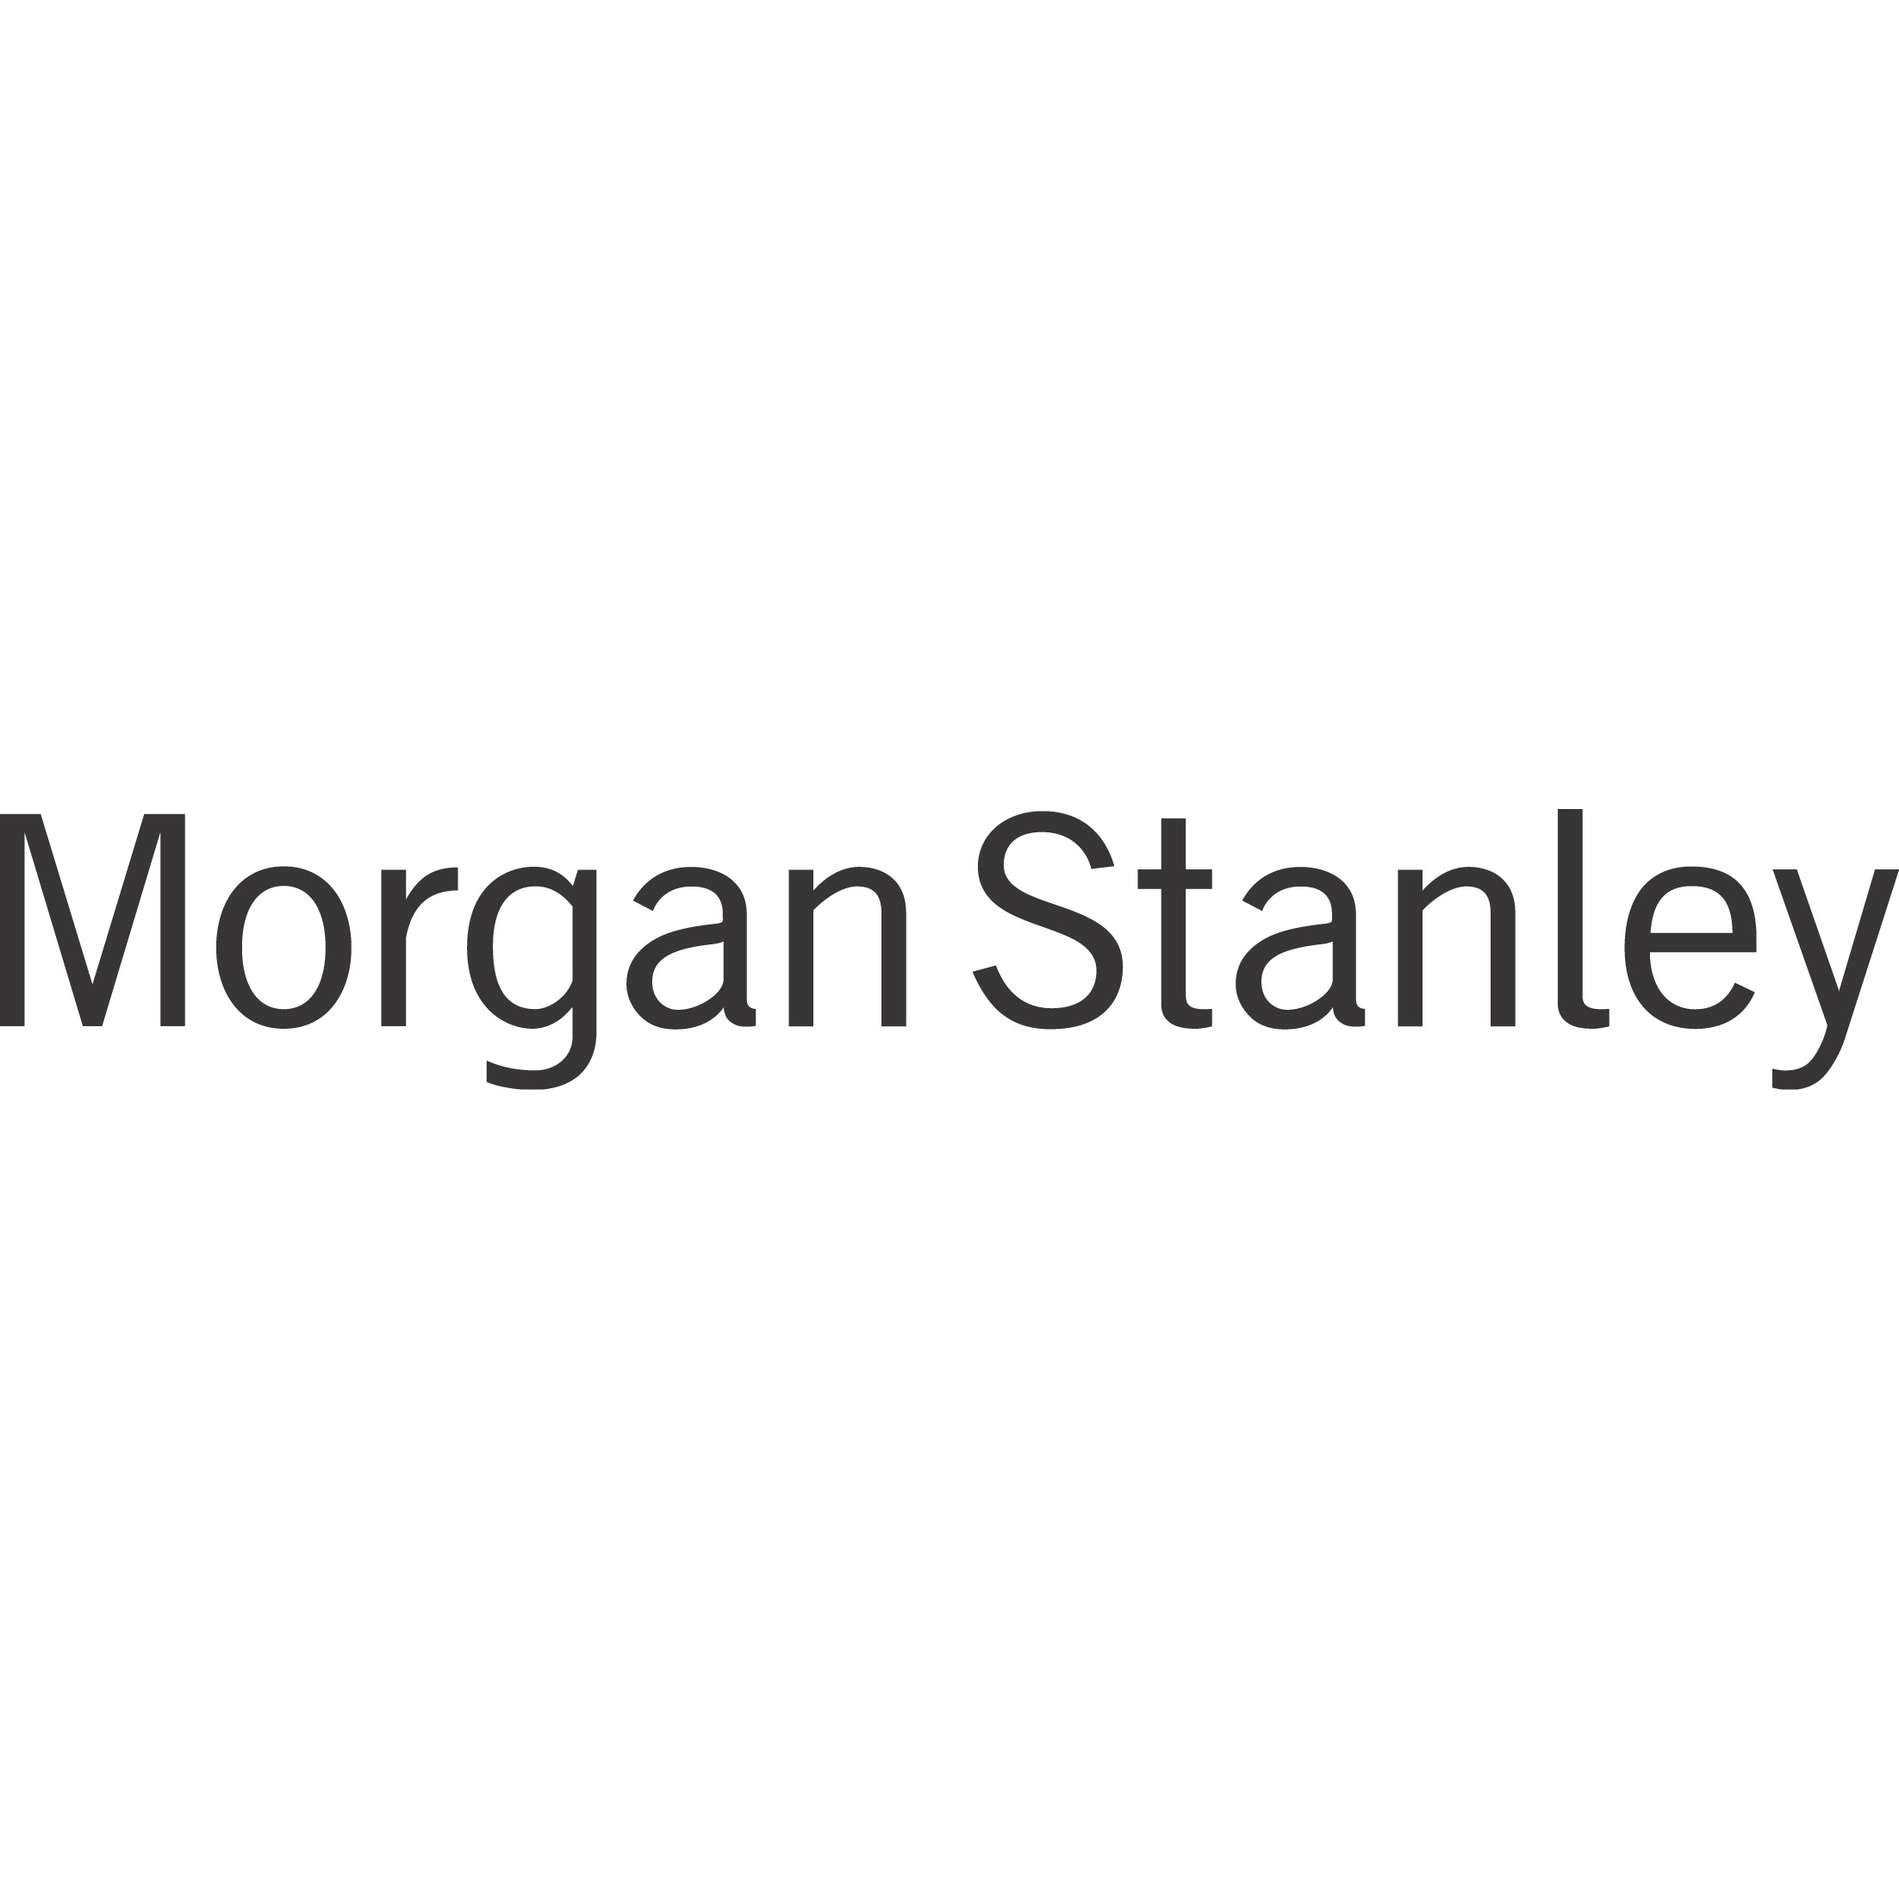 Barbara Yee - Morgan Stanley